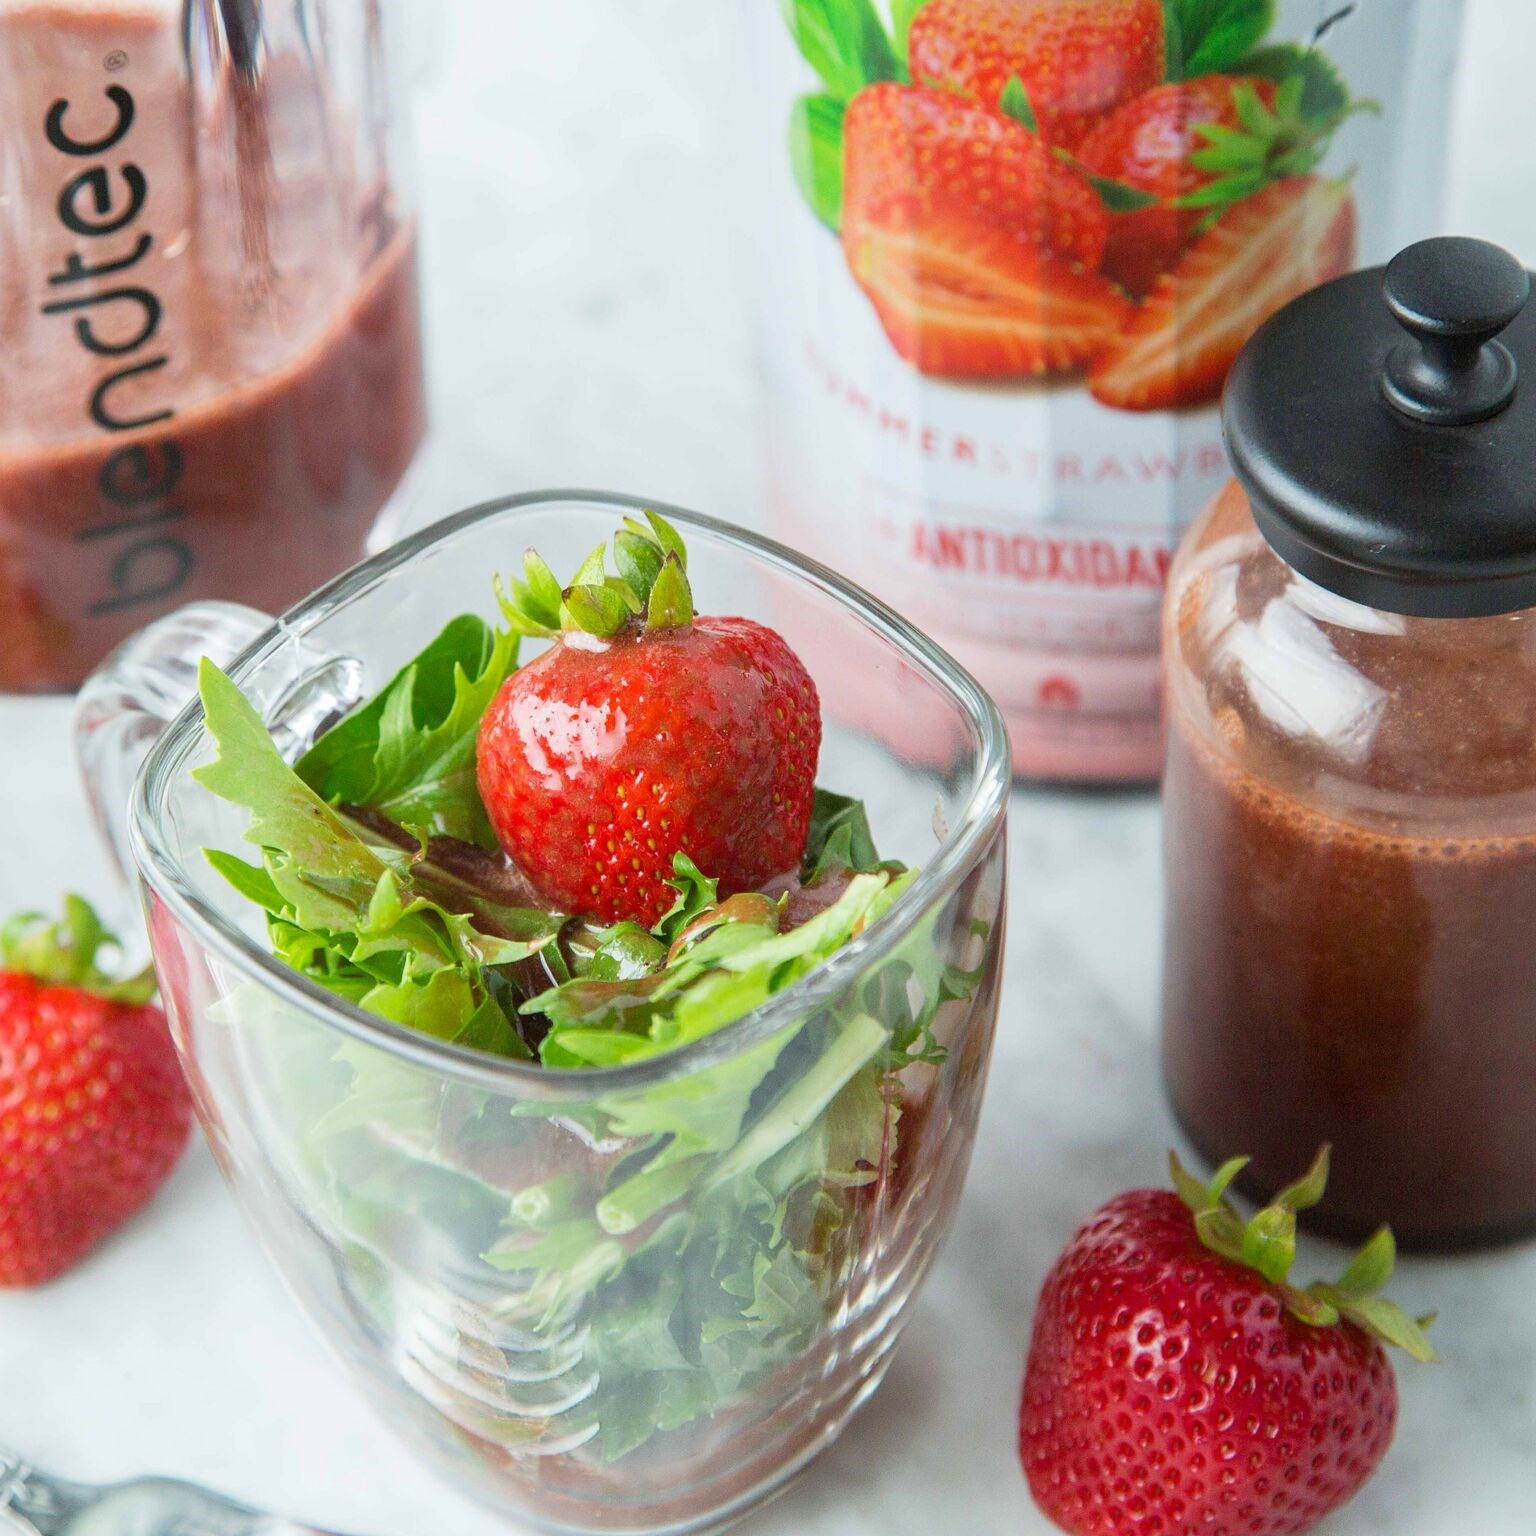 Summer Strawberry Balsamic Dressing Made with Smartfruit